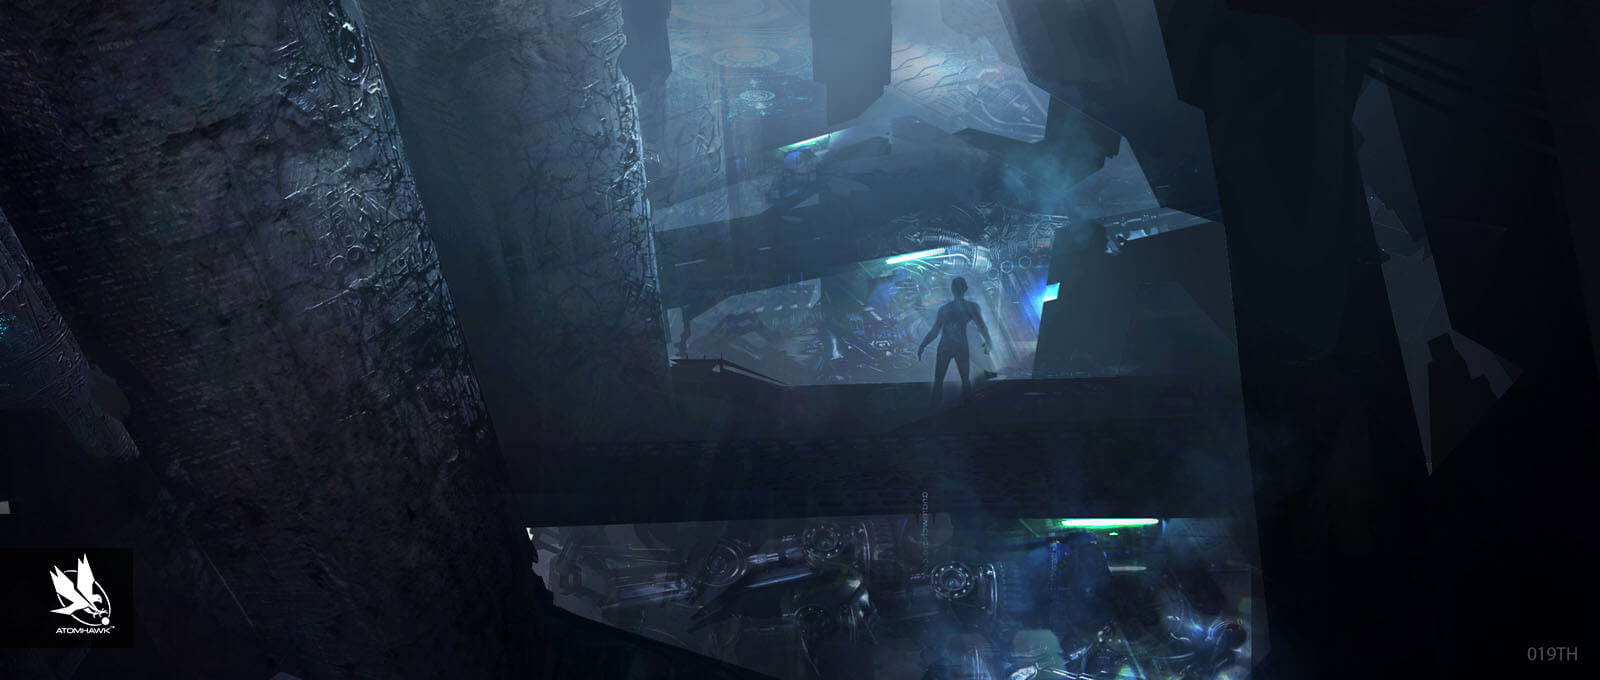 Avengers Age Of Ultron Project - Concept Art and Environment Design - Fortress Factory Level 4